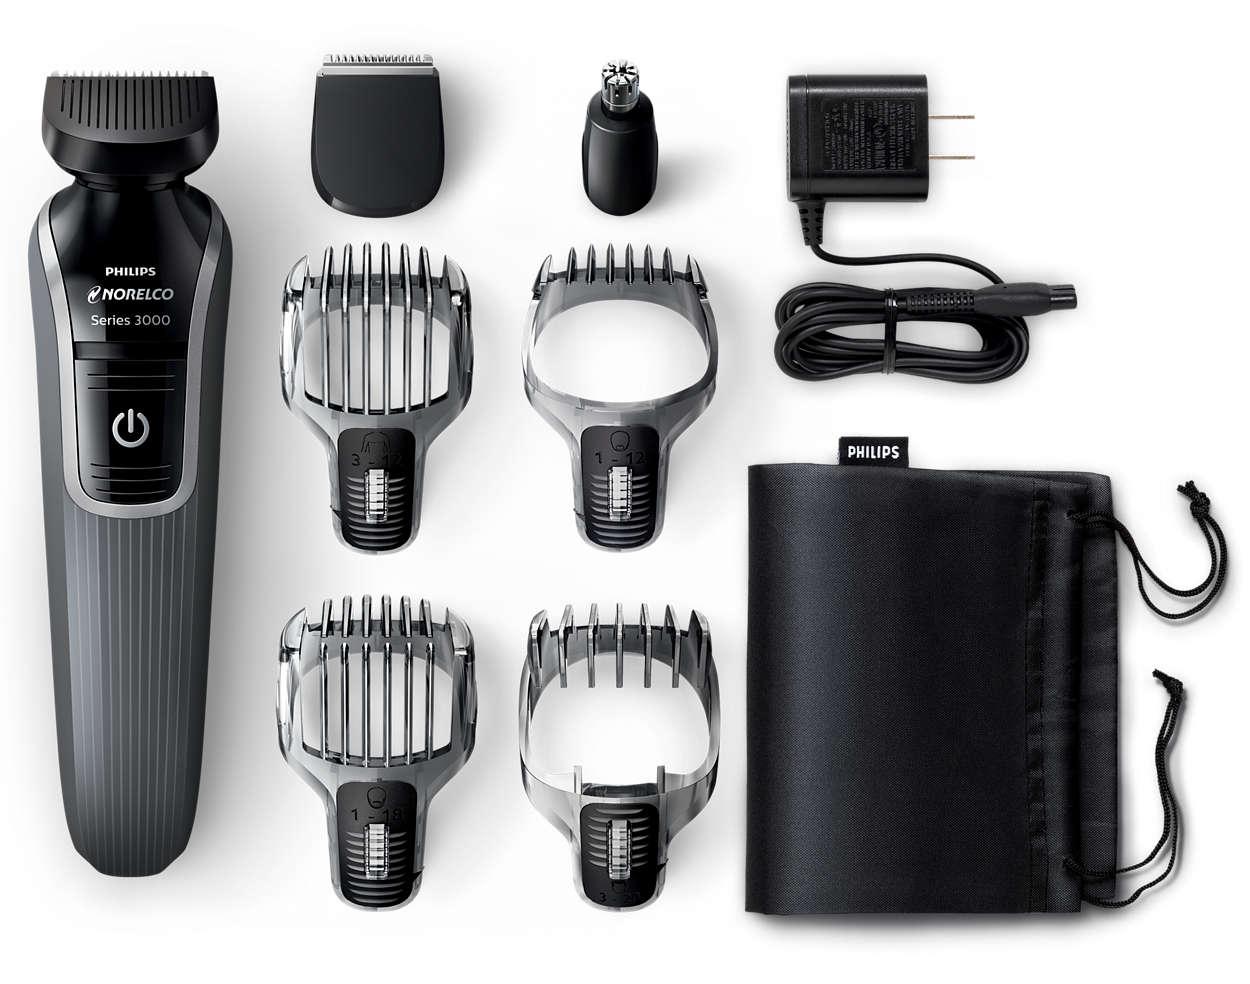 multigroom 3300 all in one 7 in 1 grooming kit qg3331 49 norelco. Black Bedroom Furniture Sets. Home Design Ideas